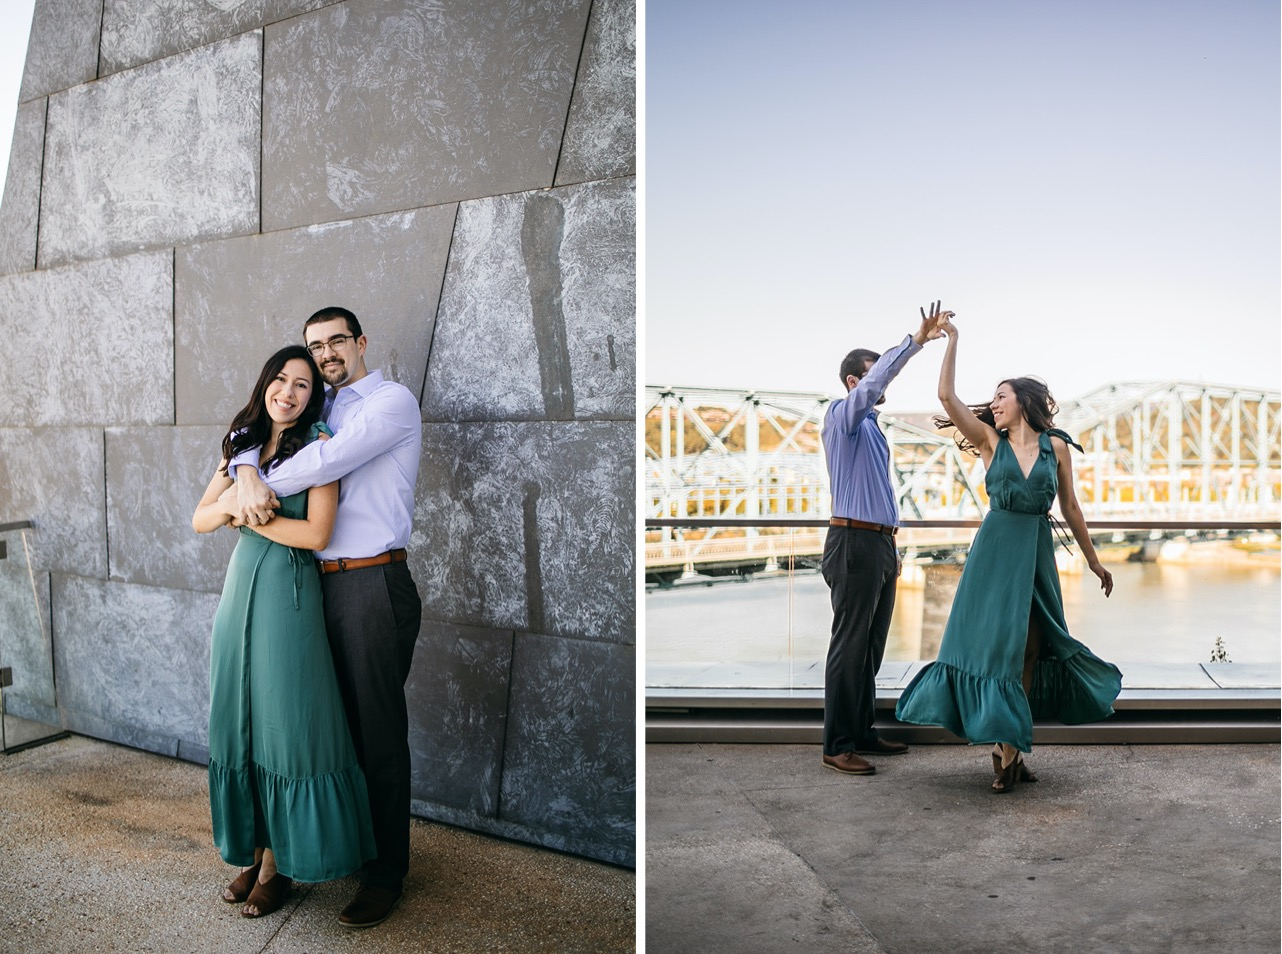 A couple smiles and poses together underneath the Walking Bridge in Chattanooga.